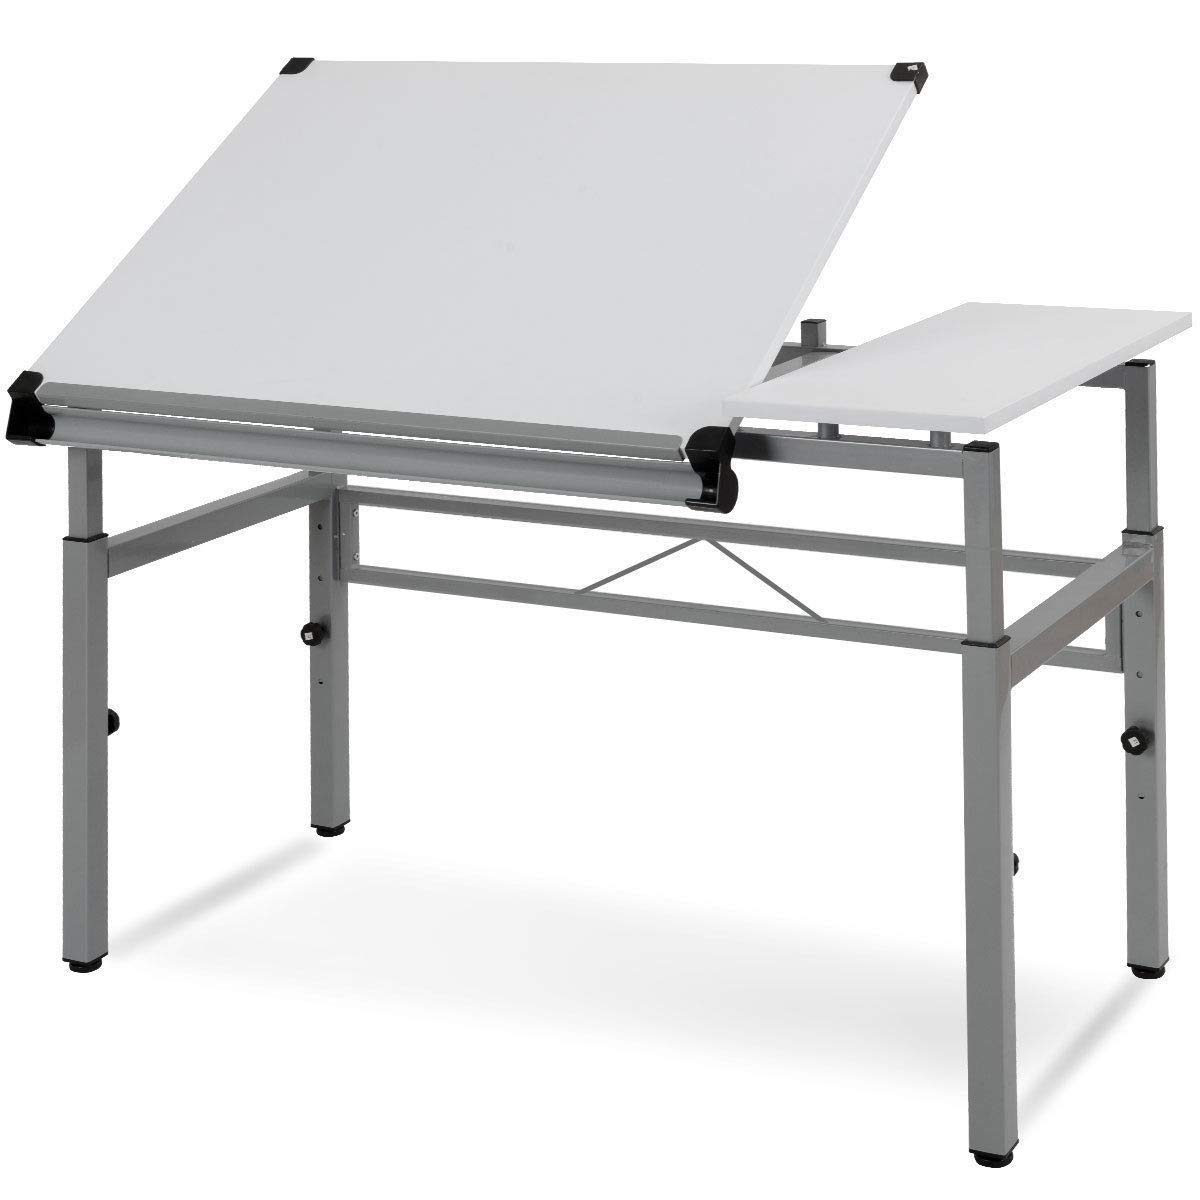 Seleq Adjustable Steel Frame Drawing Desk Drafting Table by Seleq (Image #1)